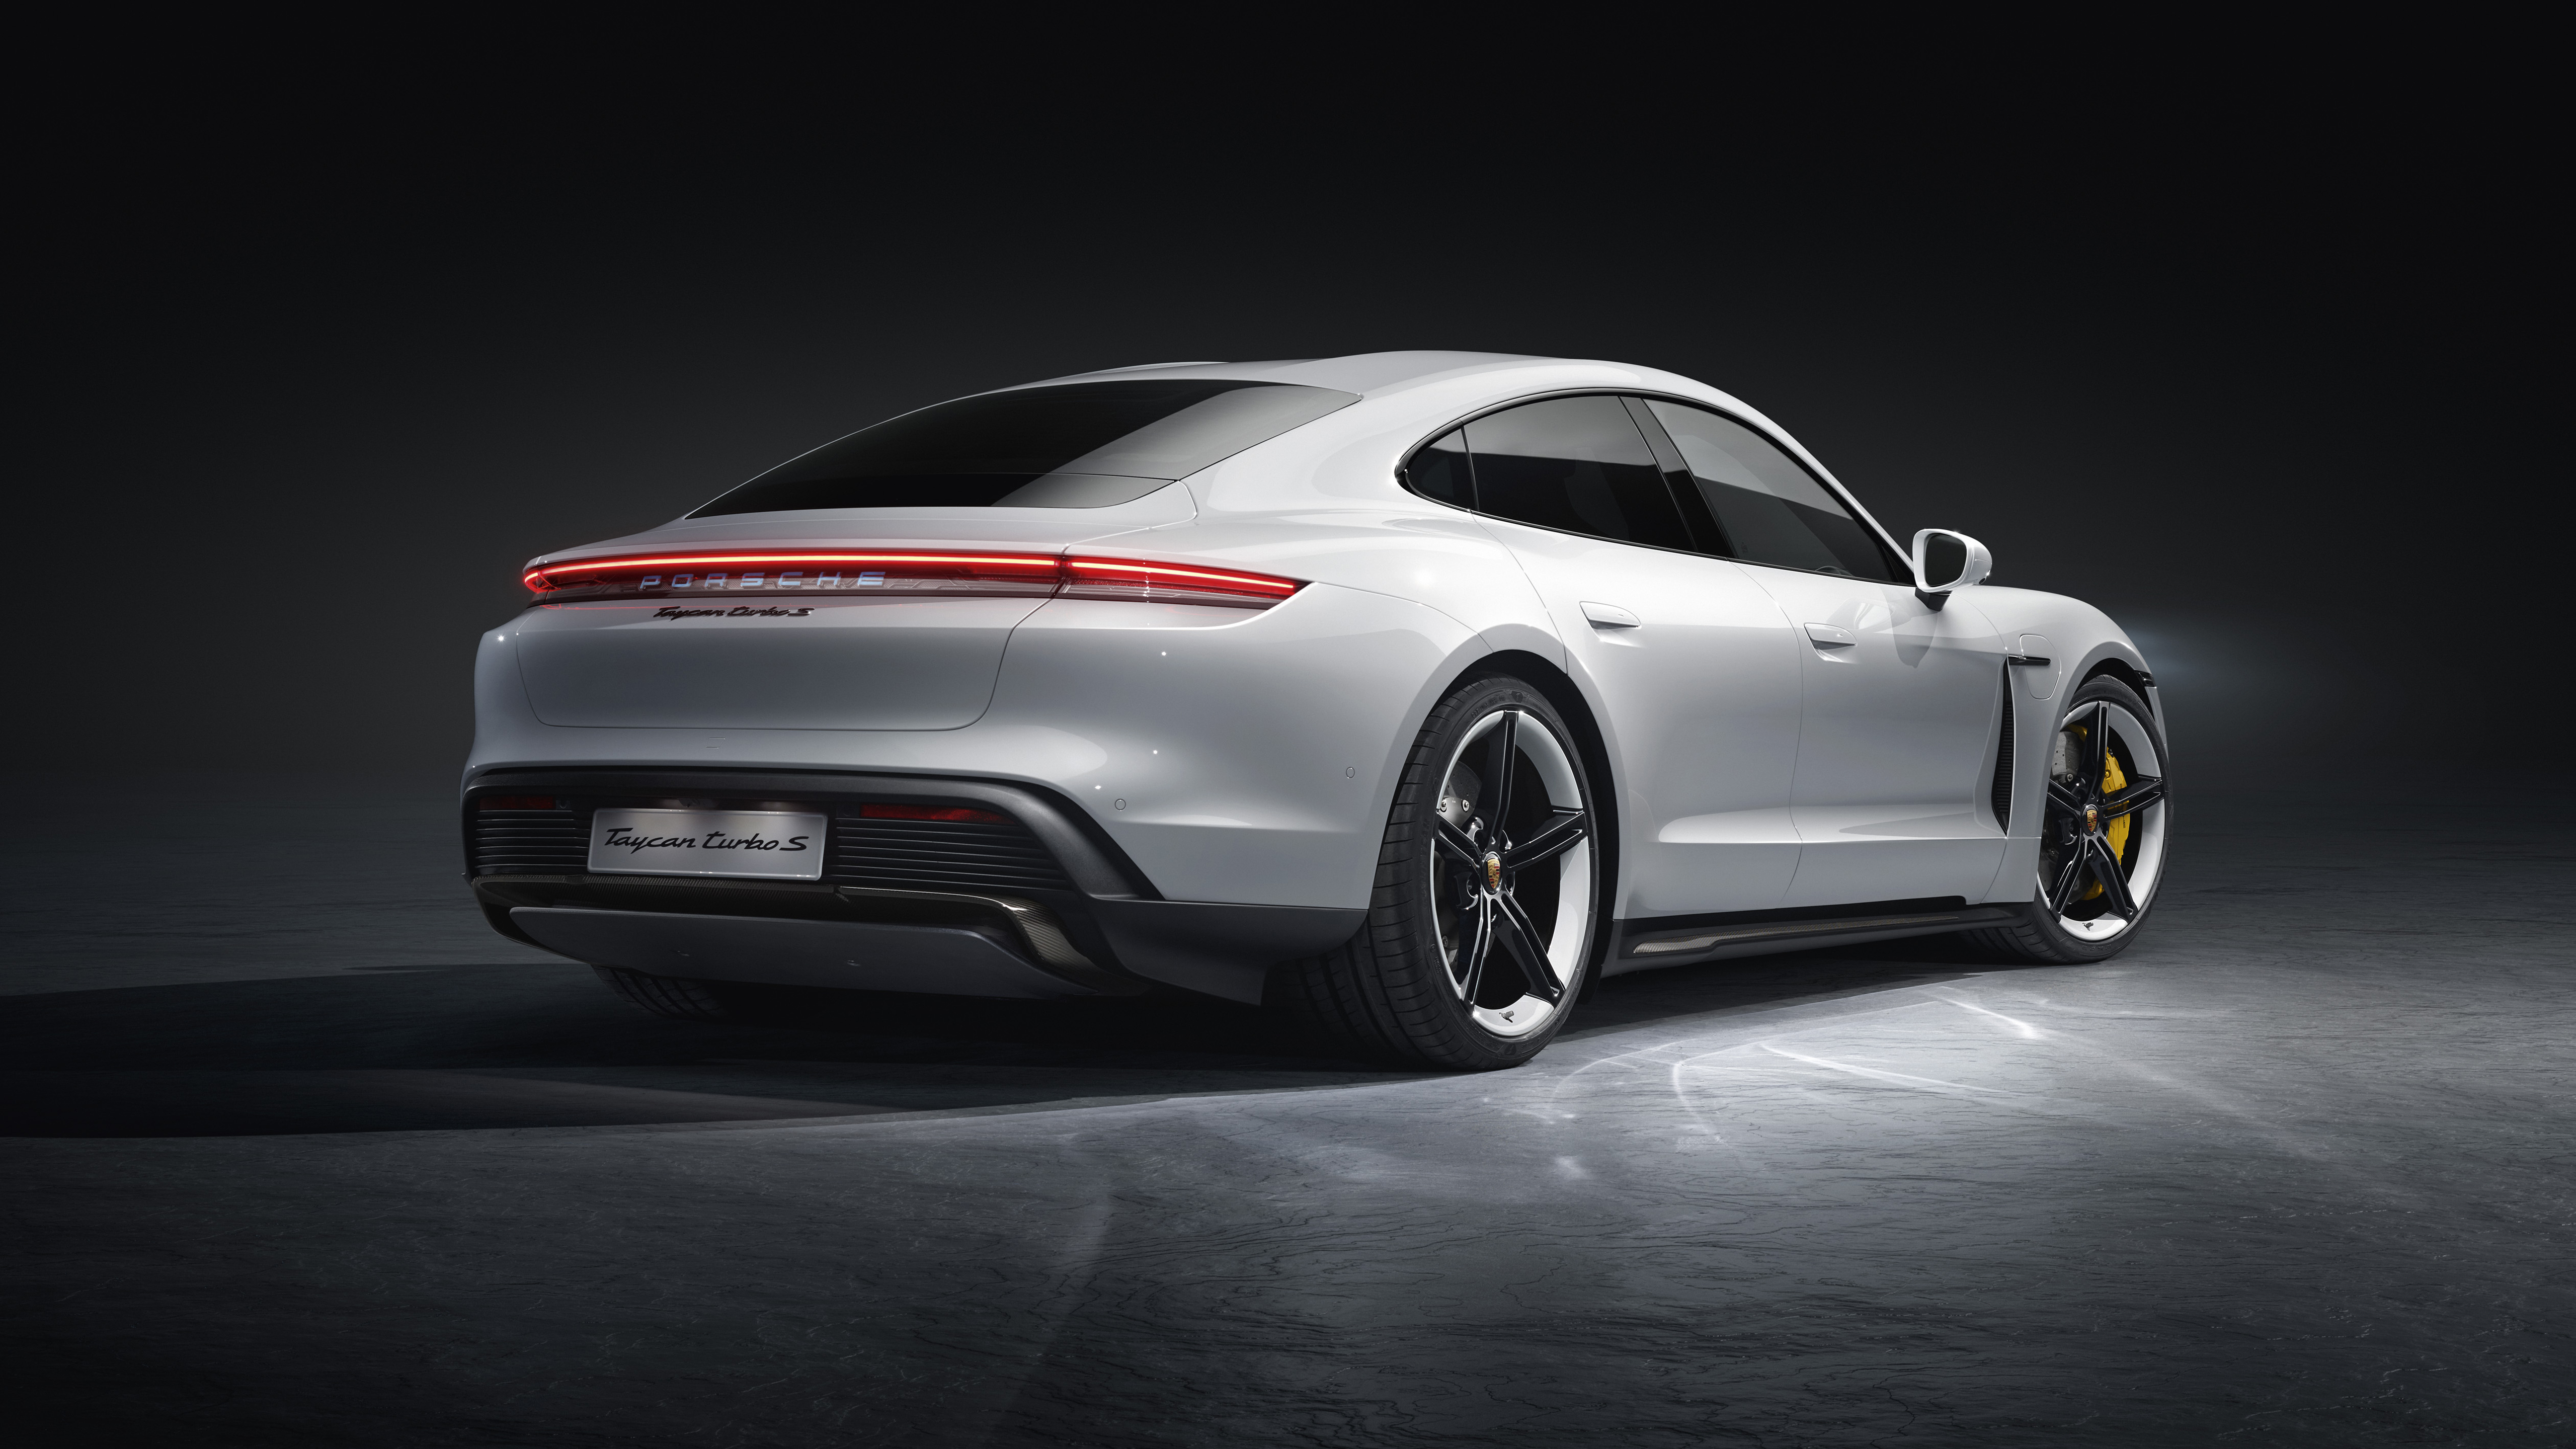 Porsche Taycan hd specifications